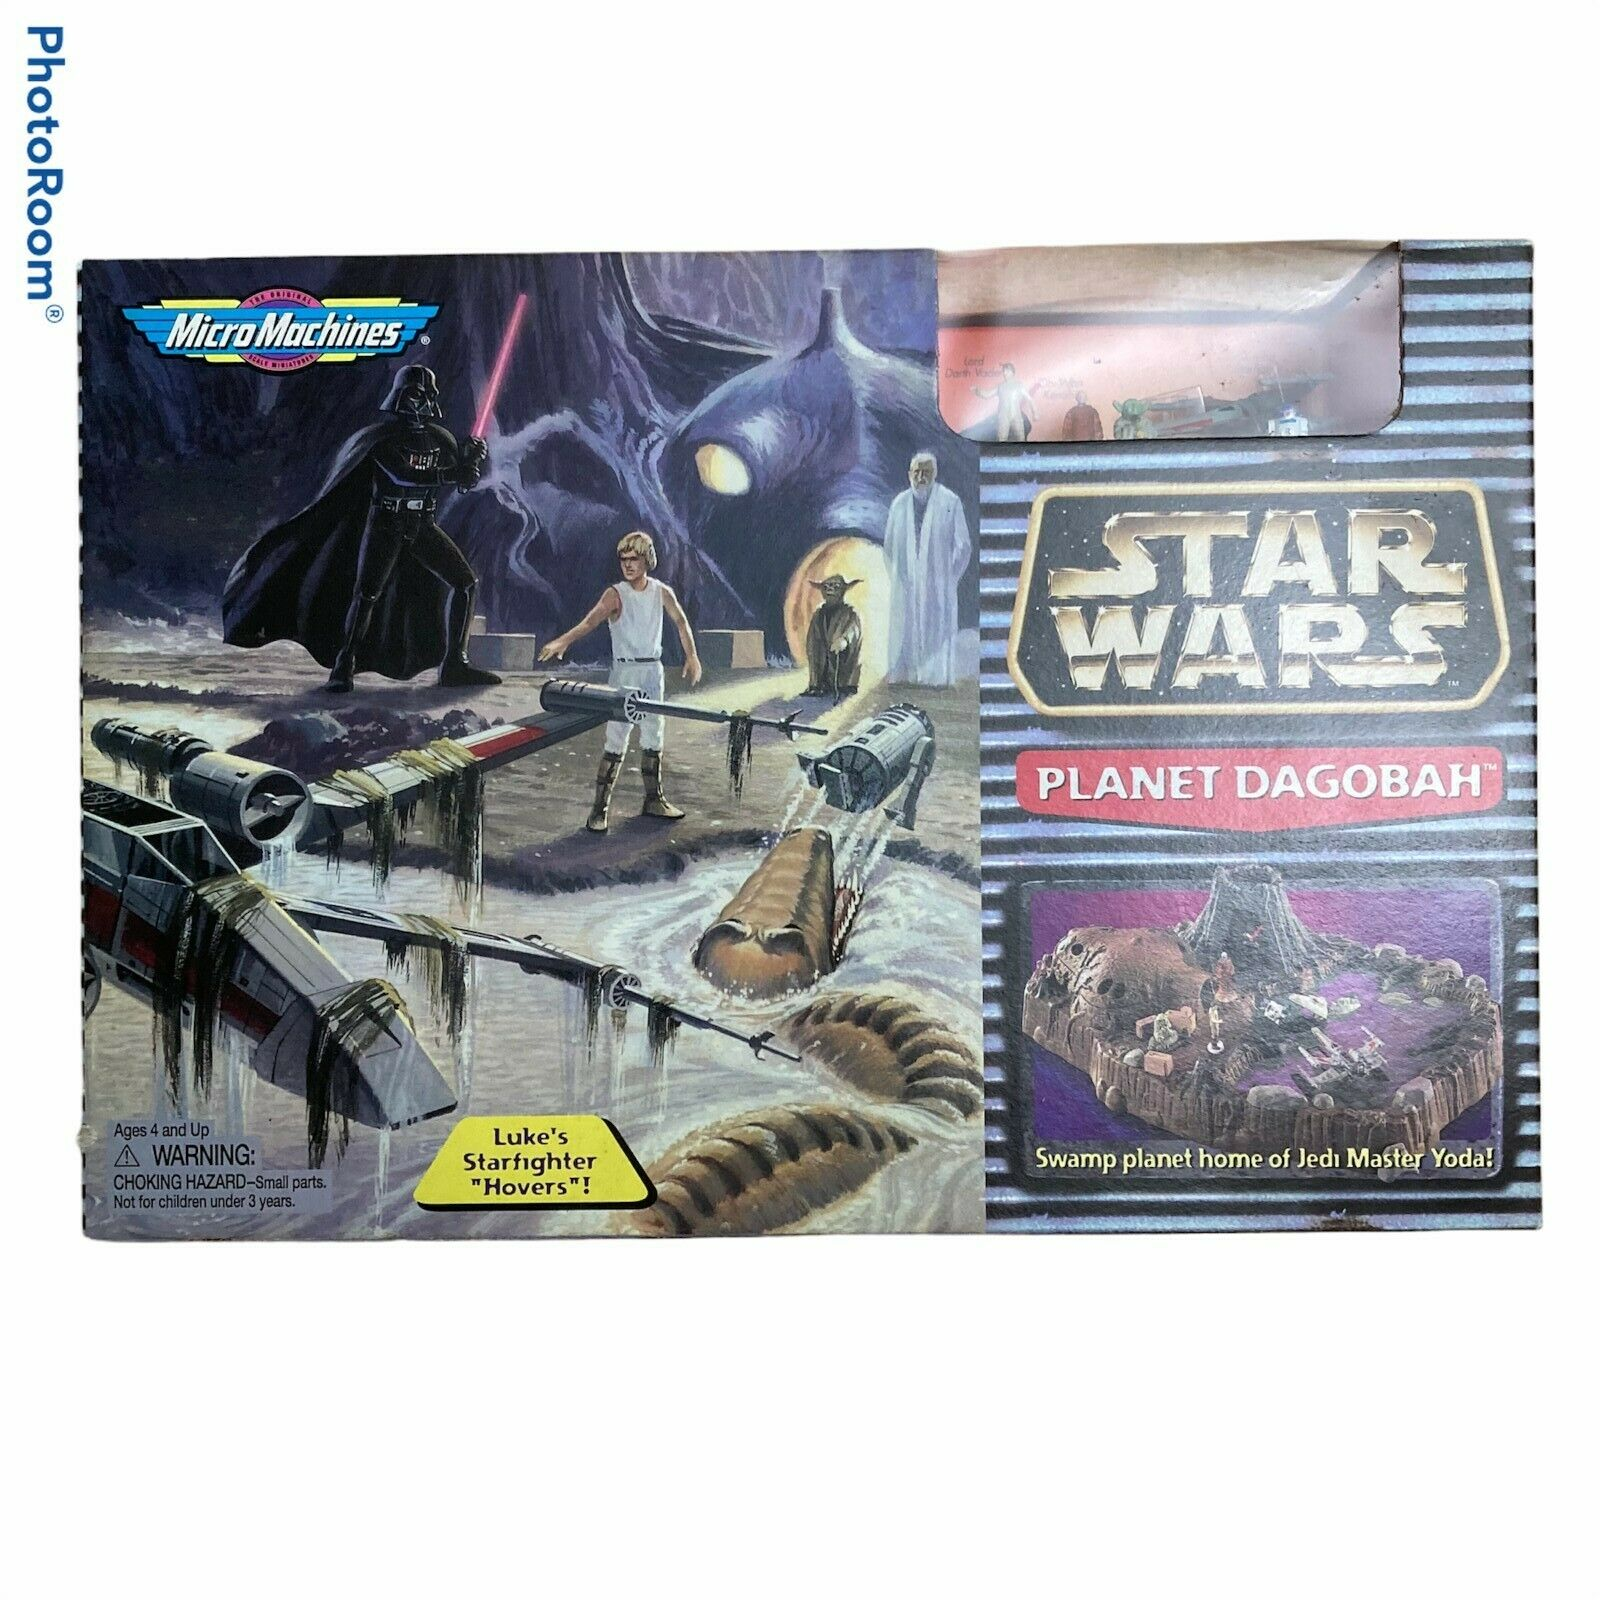 Star Wars Planet Dagobah Micromachines SEALED Playset 1997